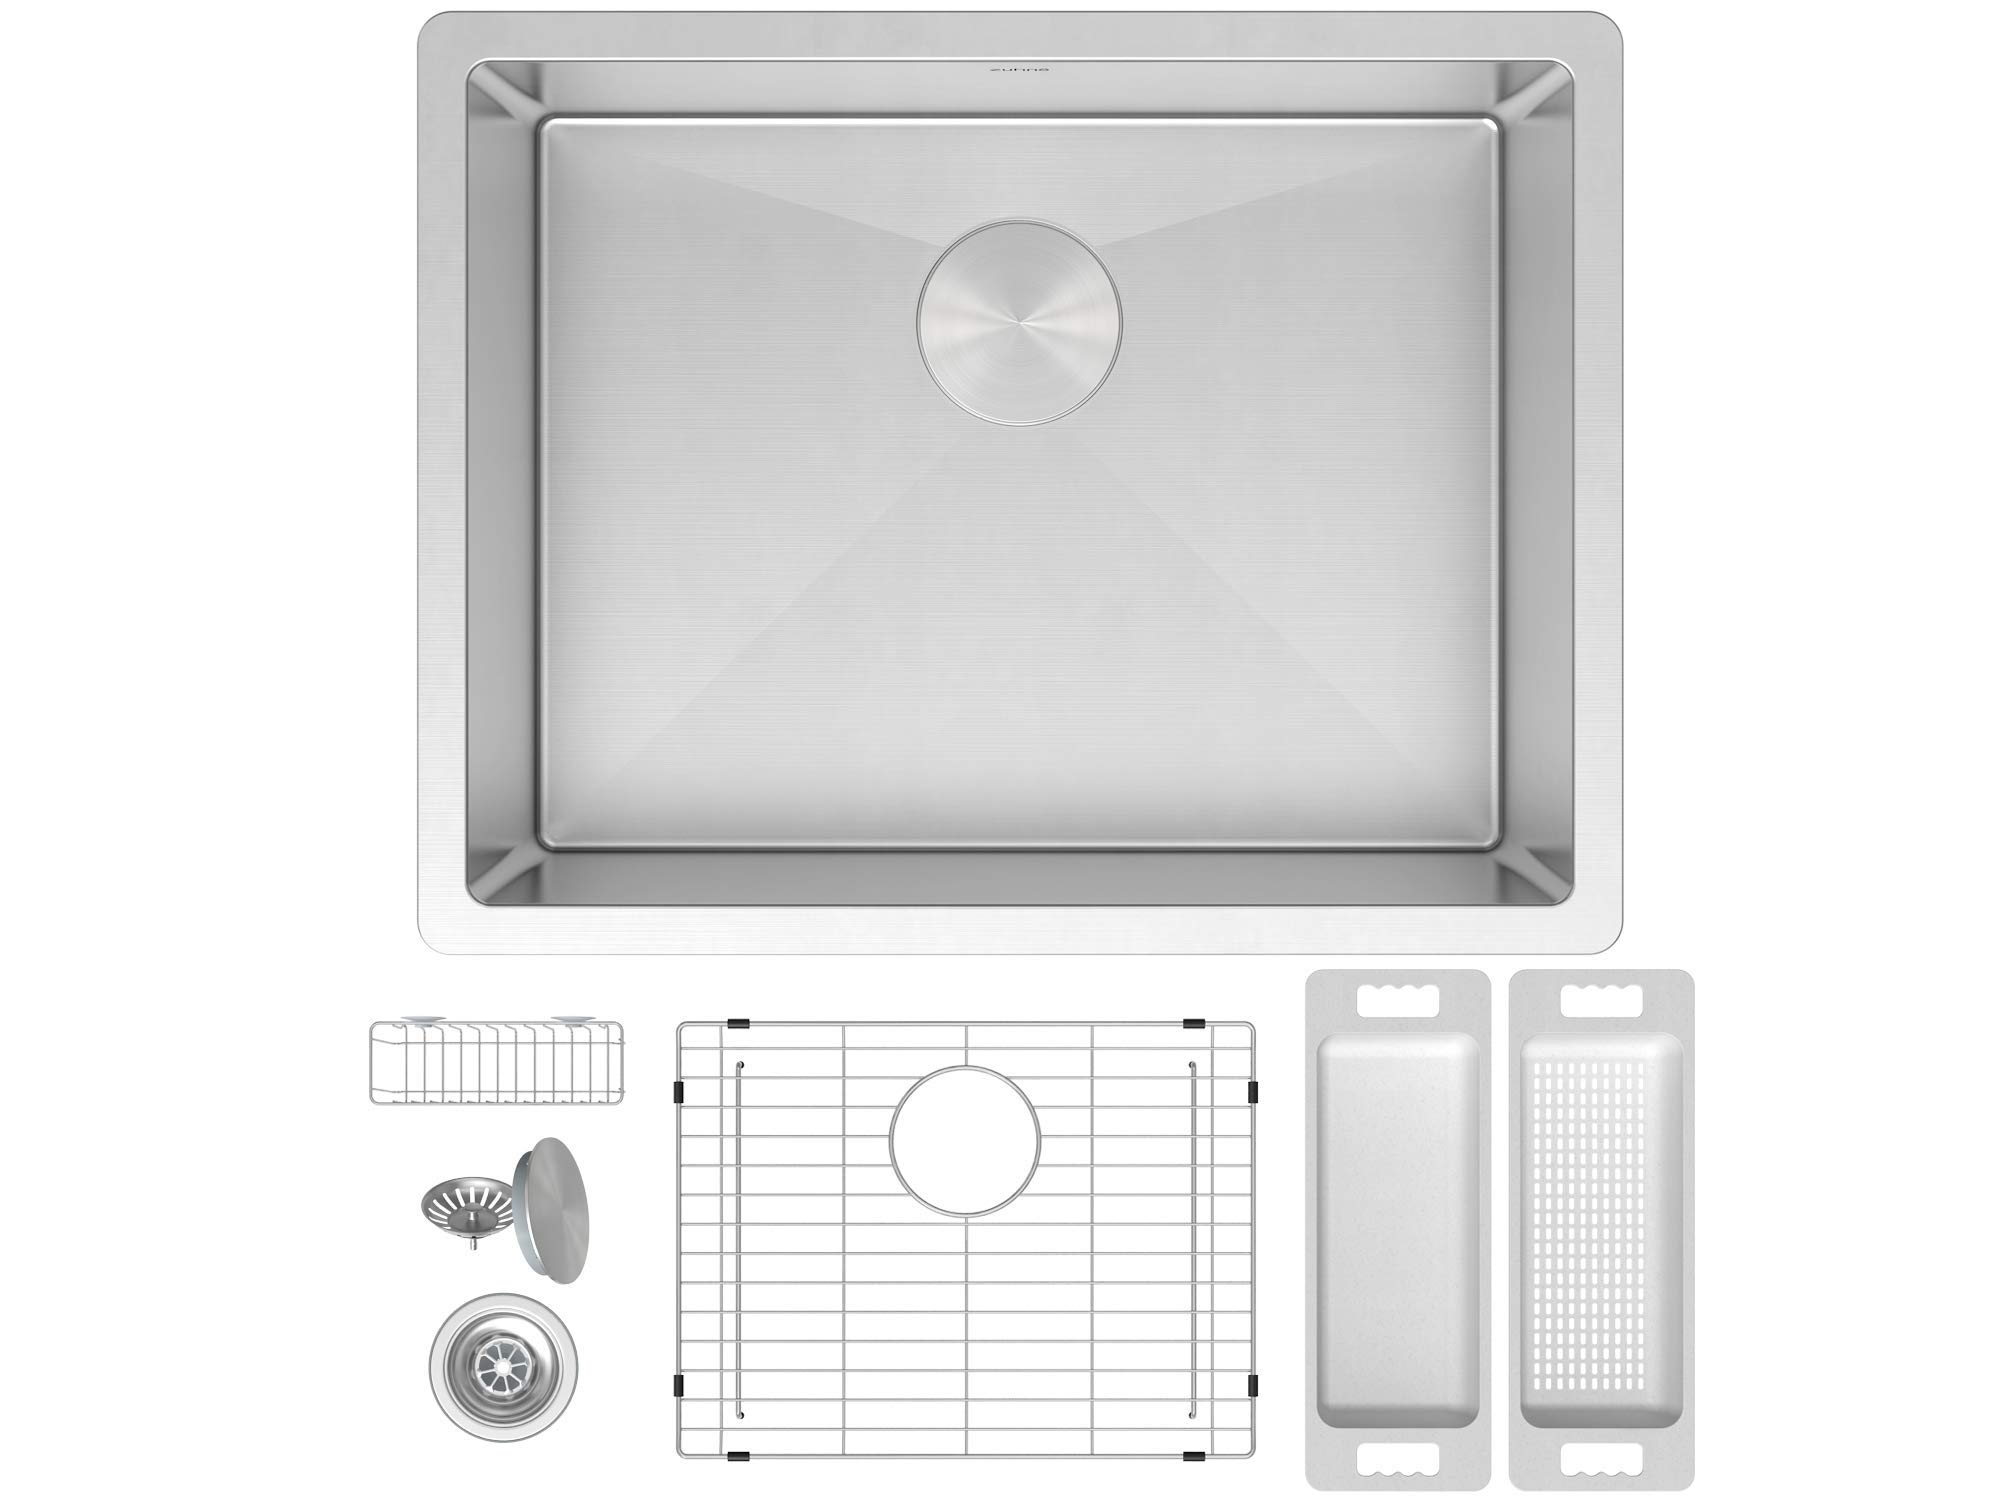 ZUHNE Modena 23 x 18 Inch Single Bowl Under Mount 16 Gauge Stainless Steel Kitchen Sink W. Grate Protector, Drain Strainer and Mounting Clips, Fits 27'' Cabinet by Zuhne